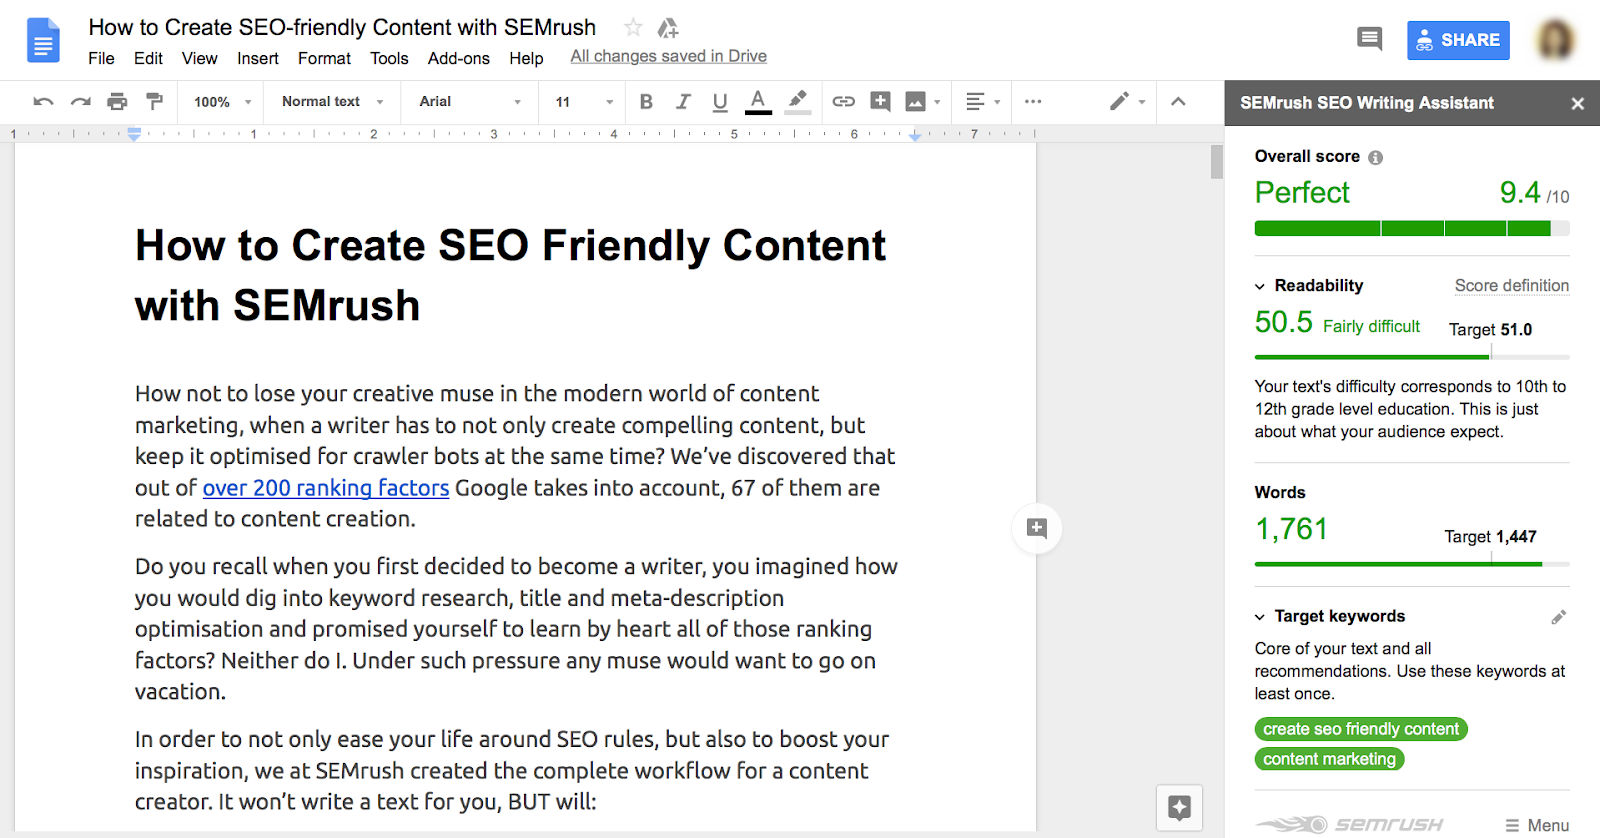 Facts About Semrush Seo Writing Assistant Revealed